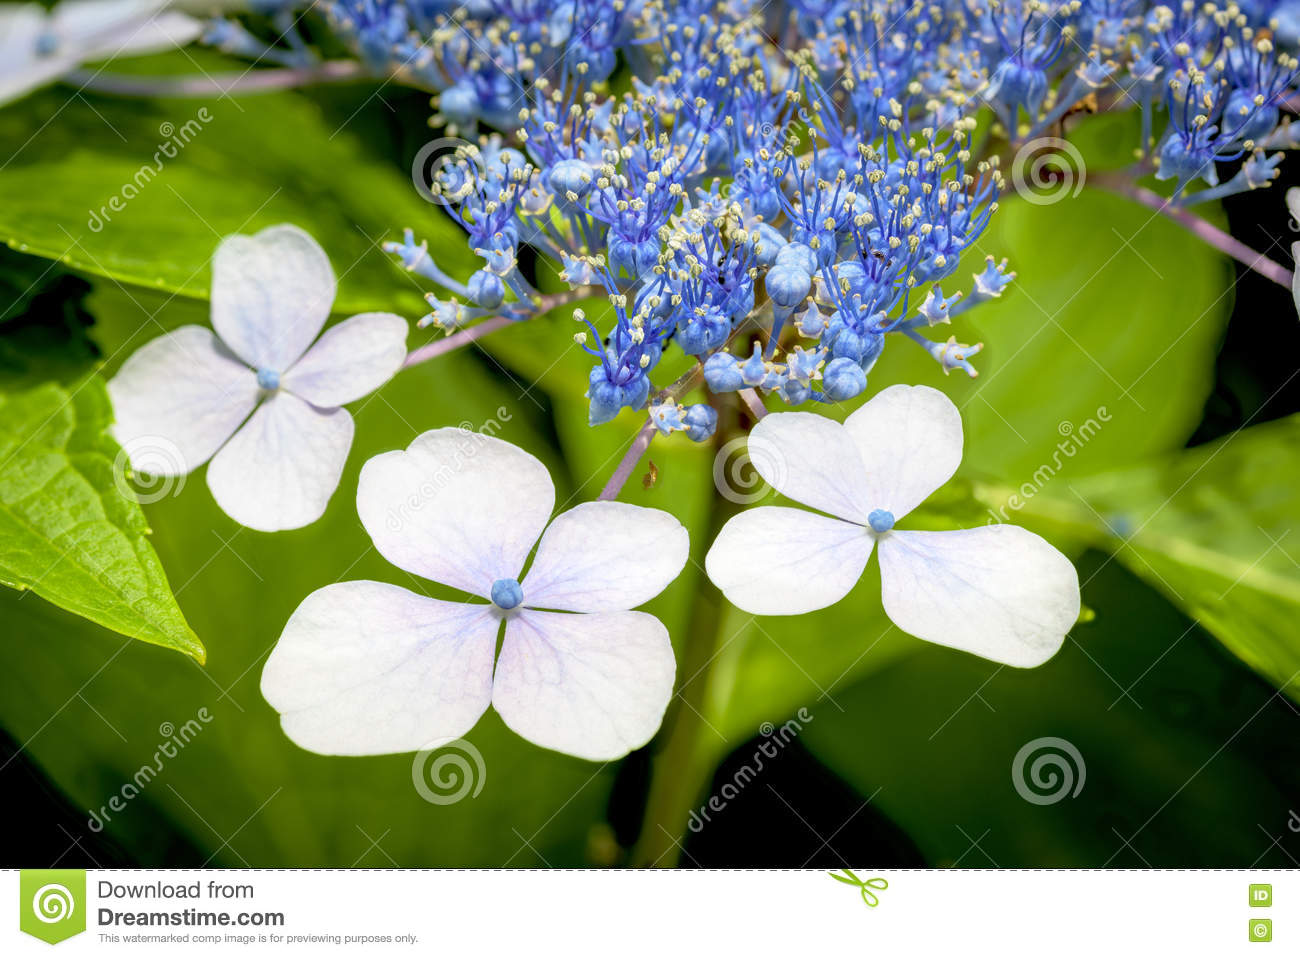 White flower with blue buds in nature stock image image of white flower with blue buds in nature izmirmasajfo